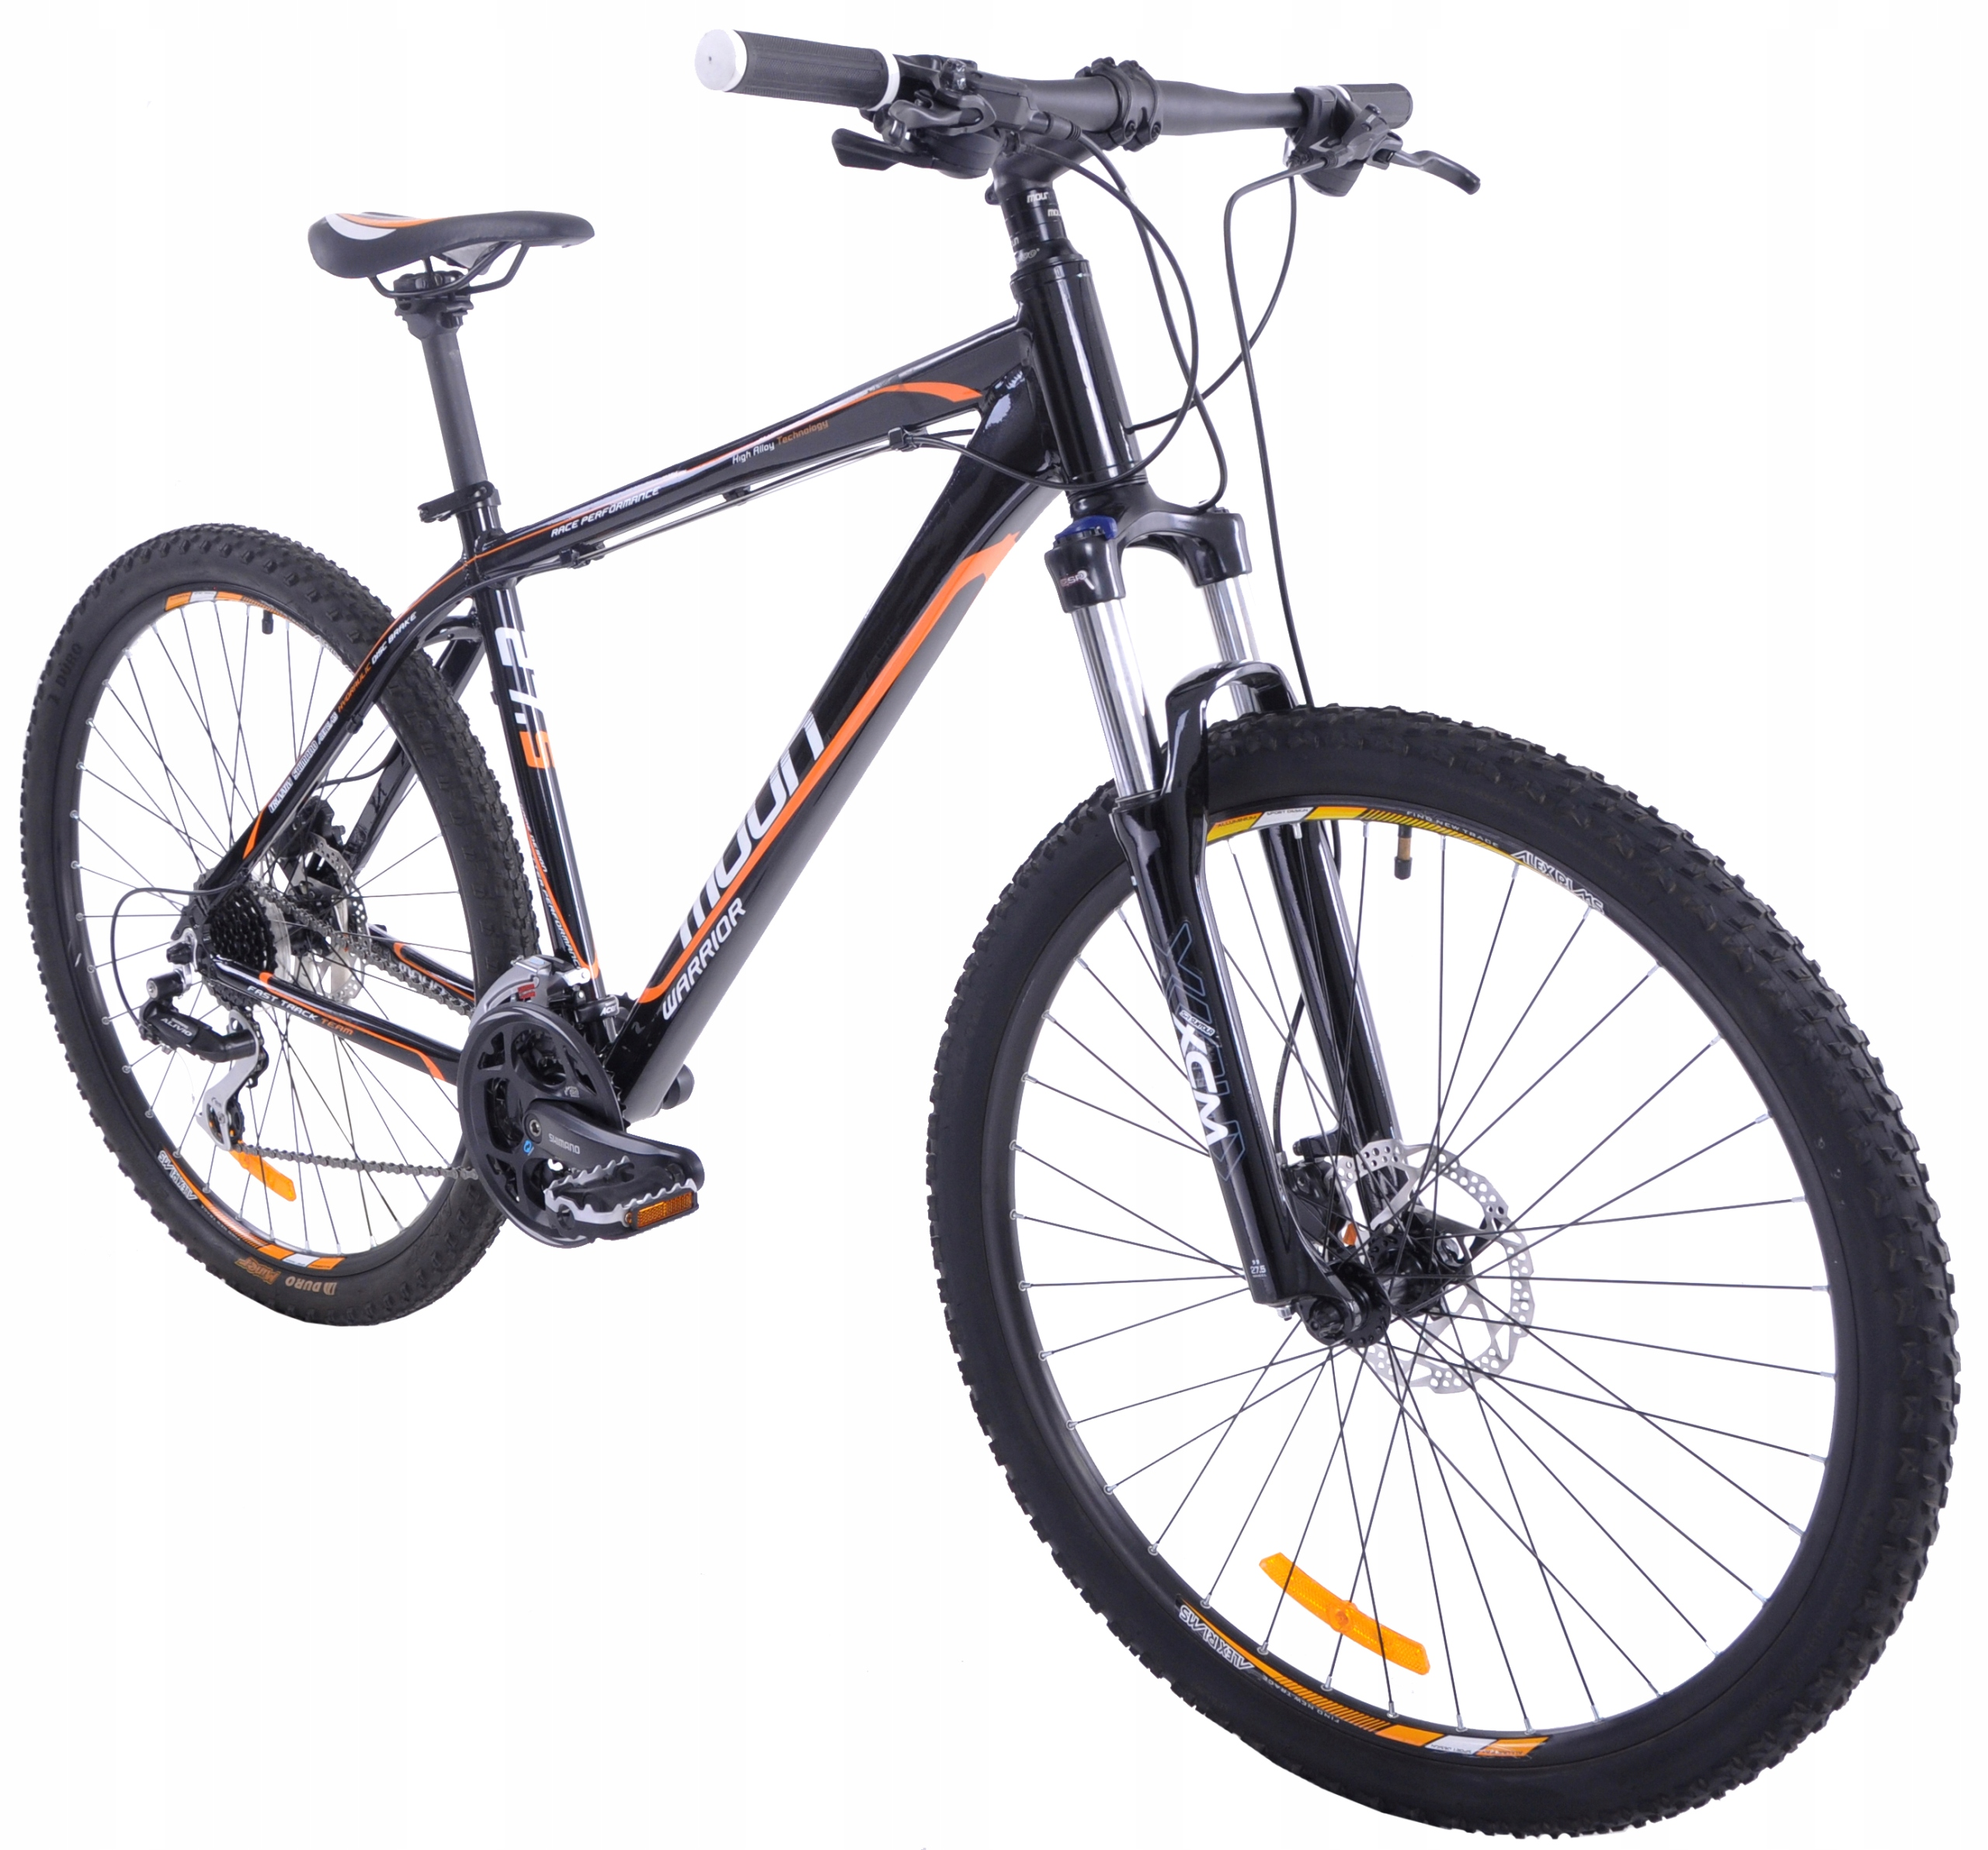 Horský bicykel - Mountain bike 27.5 MTB Moun Warrior Promotion !!!